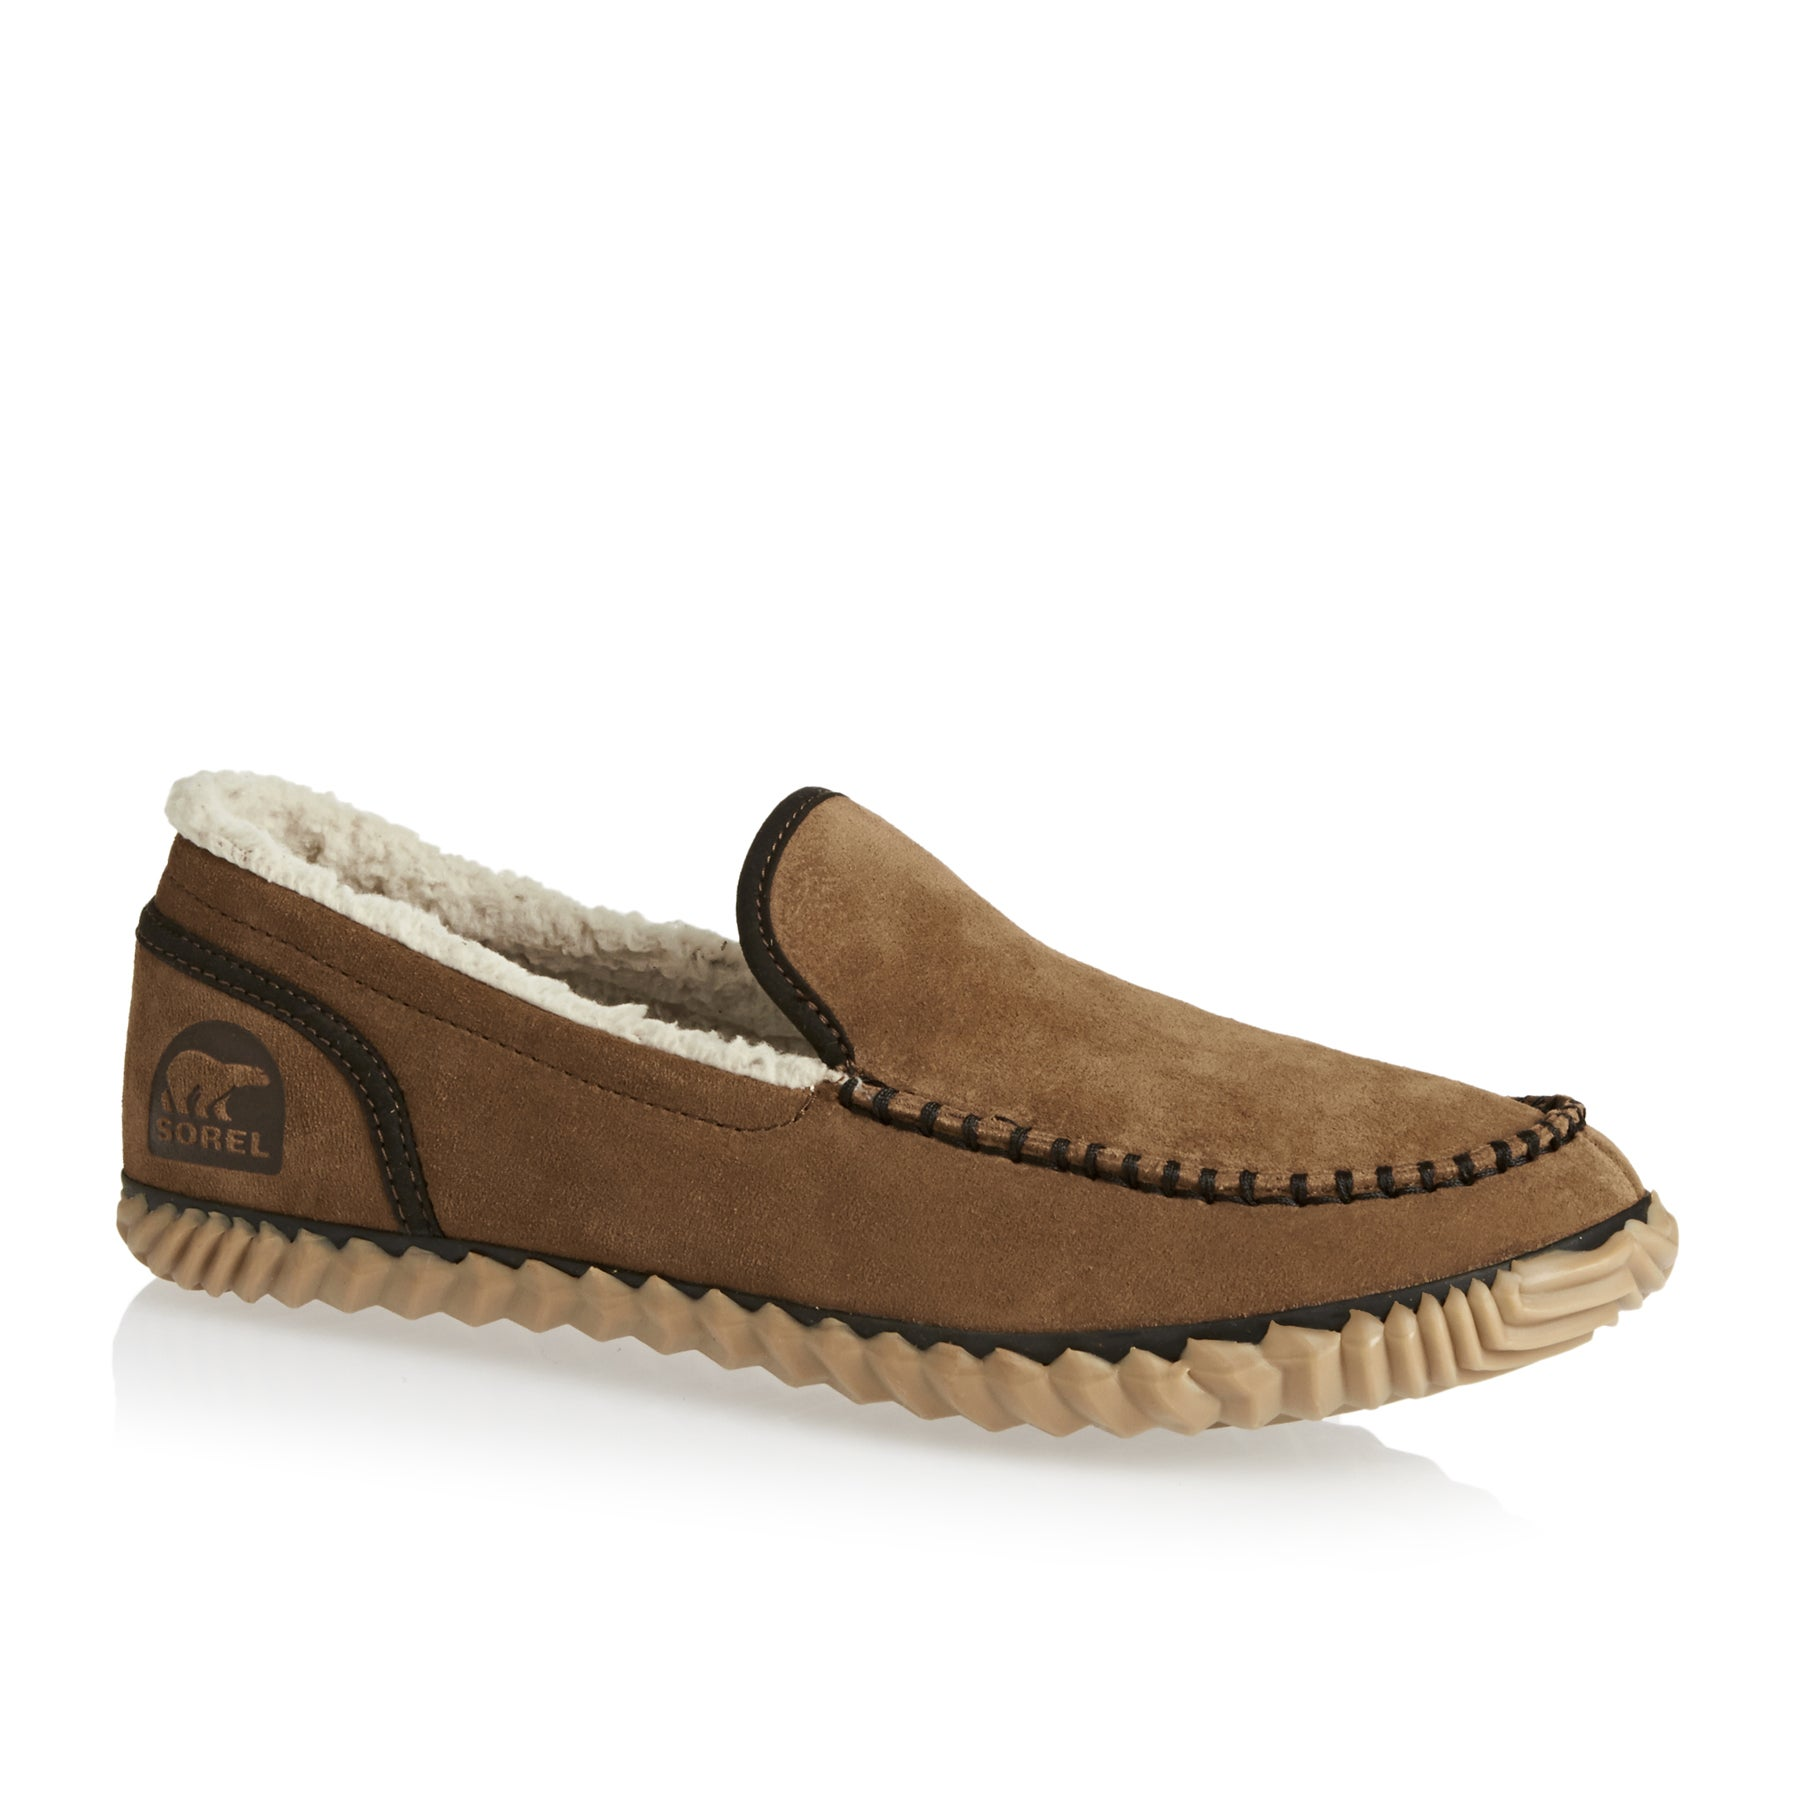 Sorel Dude Moc Slippers - Grizzly Bear